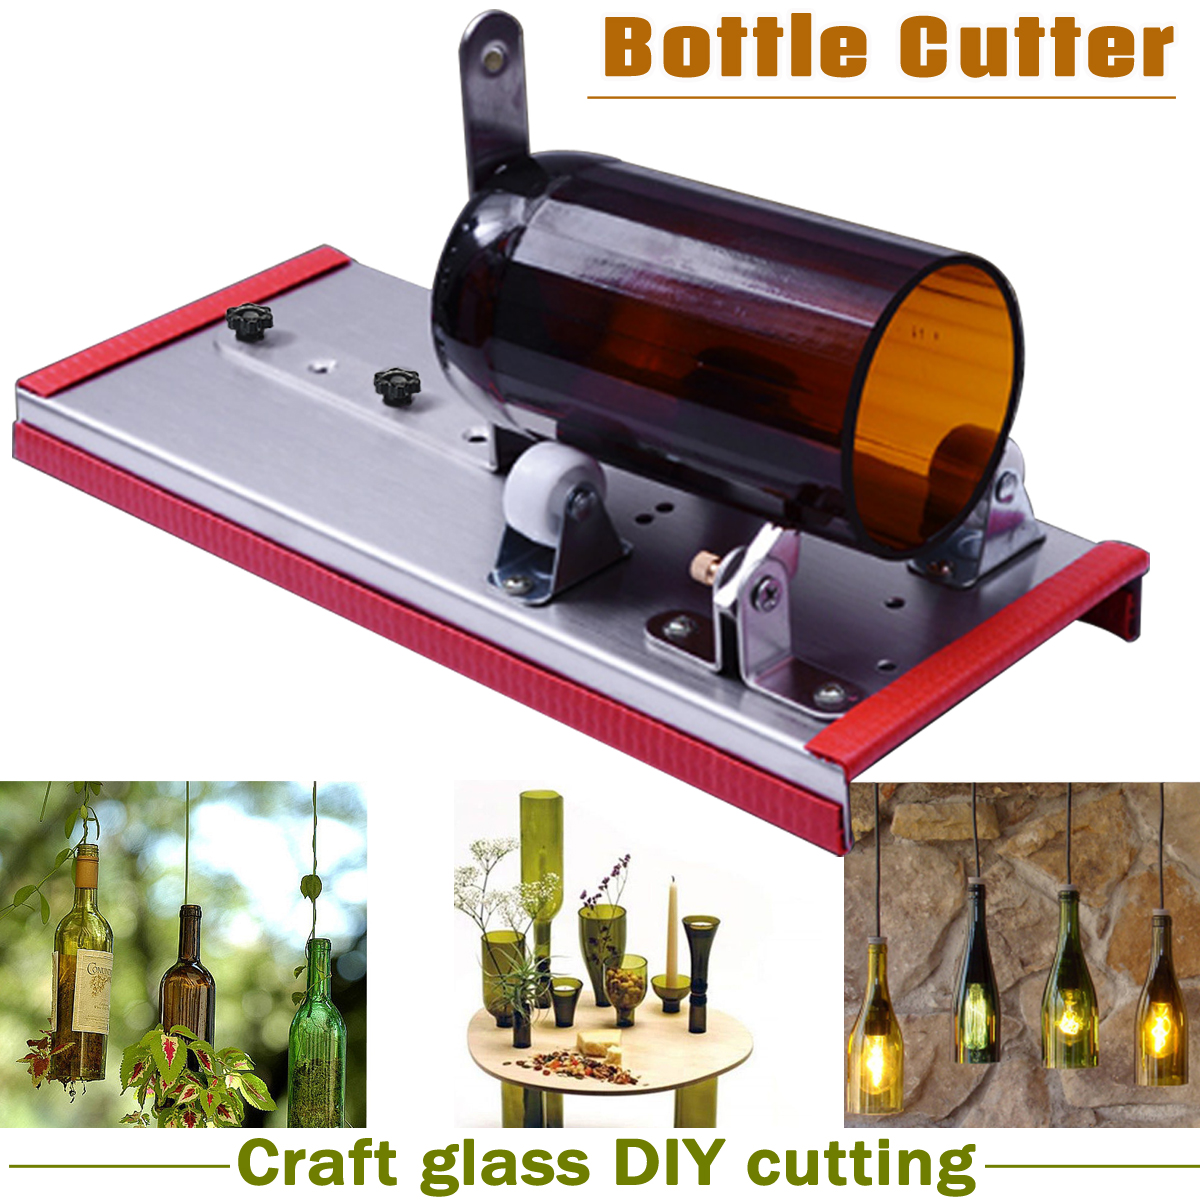 Glass Wine Bottle Cutter Cutting Machine Beer Jar DIY Kit Craft Recycle Tool